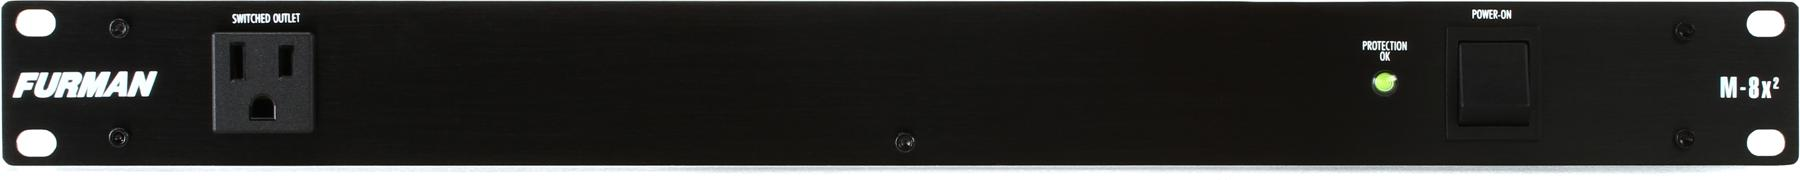 1. Furman M-8x2 8 Outlet Power Conditioner